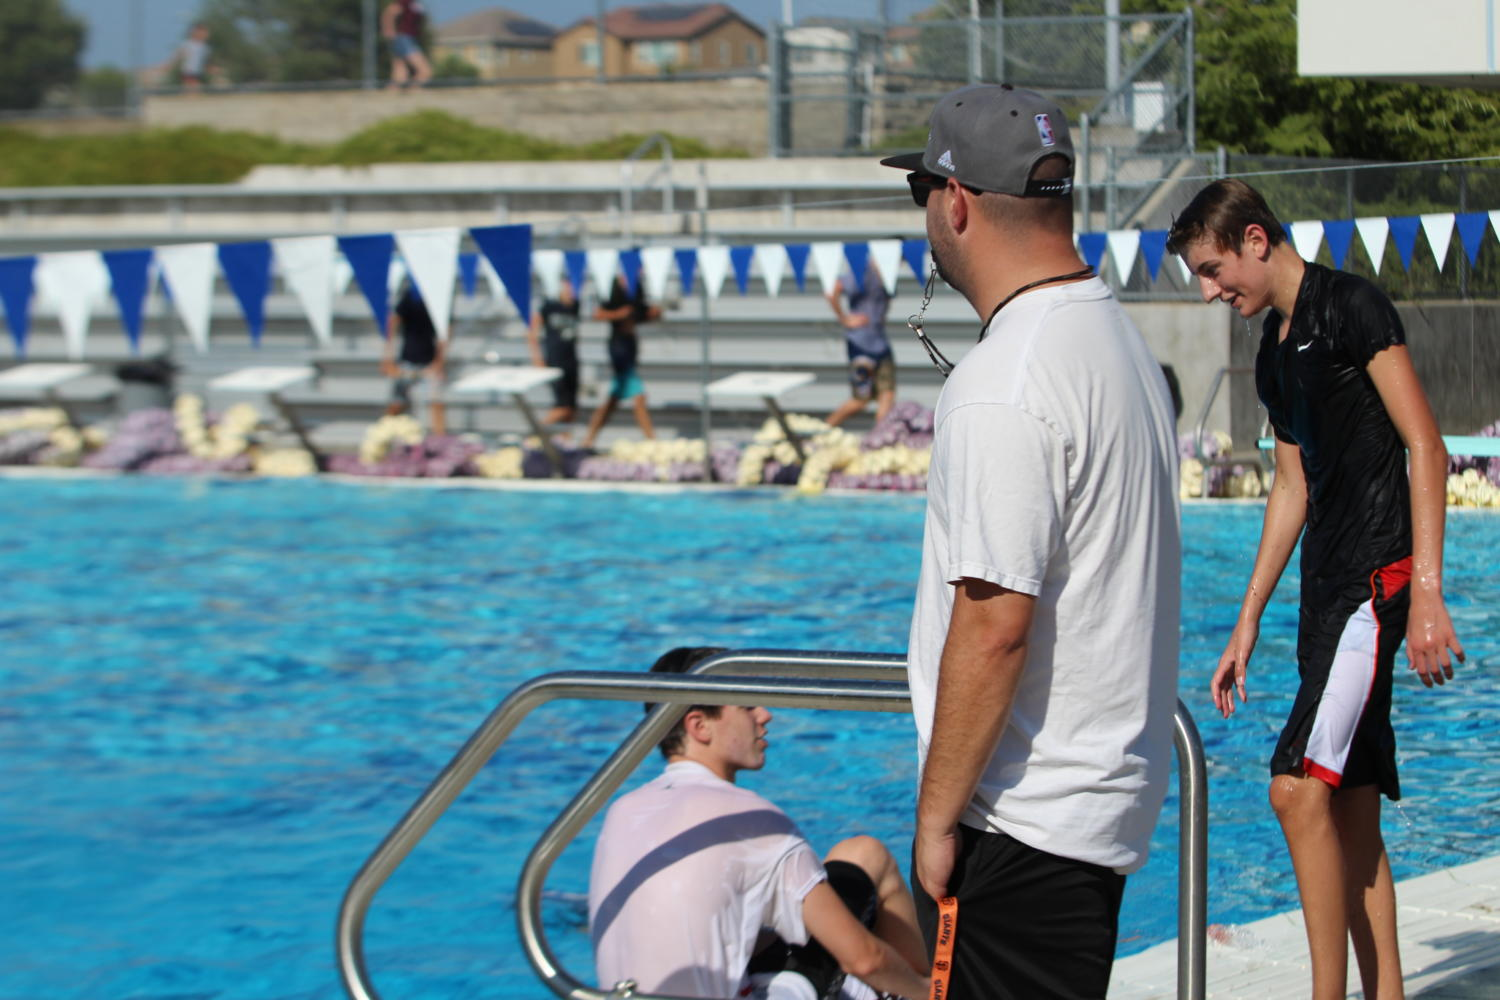 Coach Jon Norris leads dryland during men's varsity water polo practice. Photo by Madilyn Sindelar.